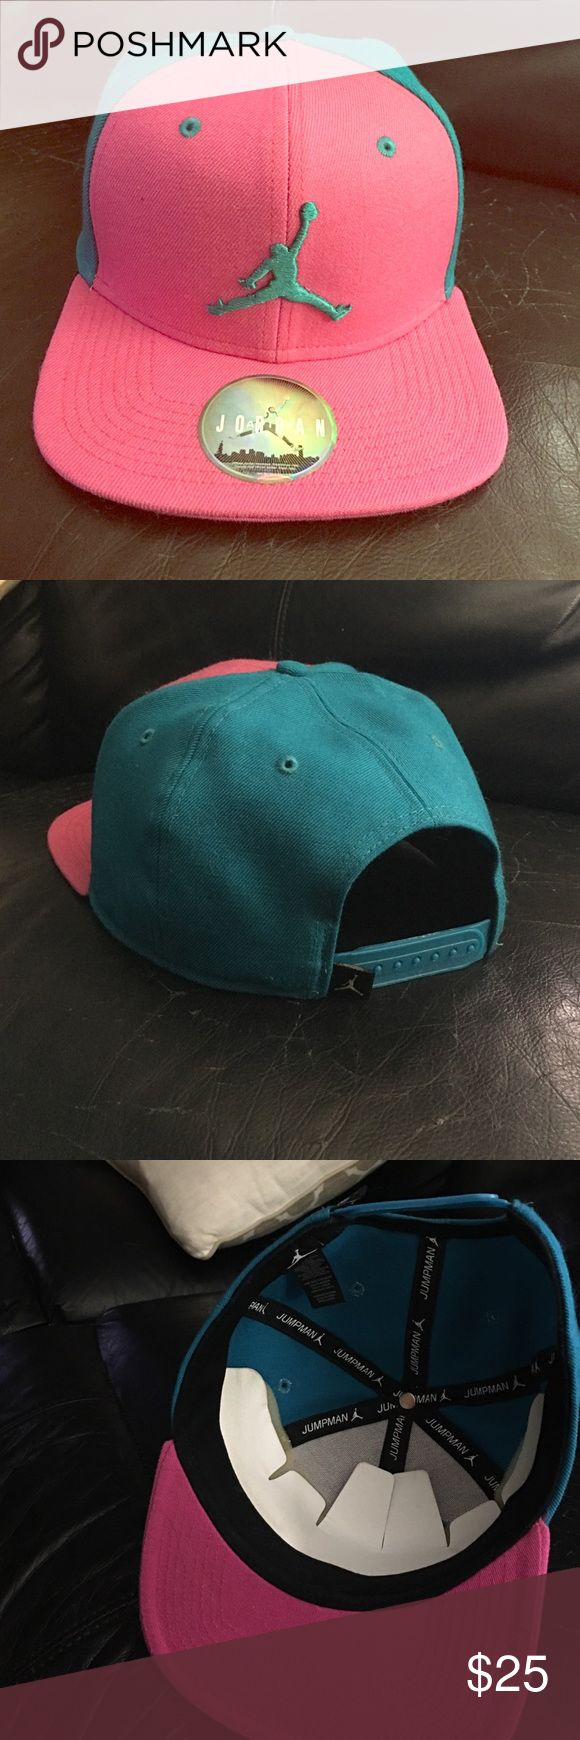 NWOT Jordan snap back hat Fuchsia and teal Jordan snap back minor Knicks in the snaps but that's the way it was bought(pictured) Jordan Accessories Hats